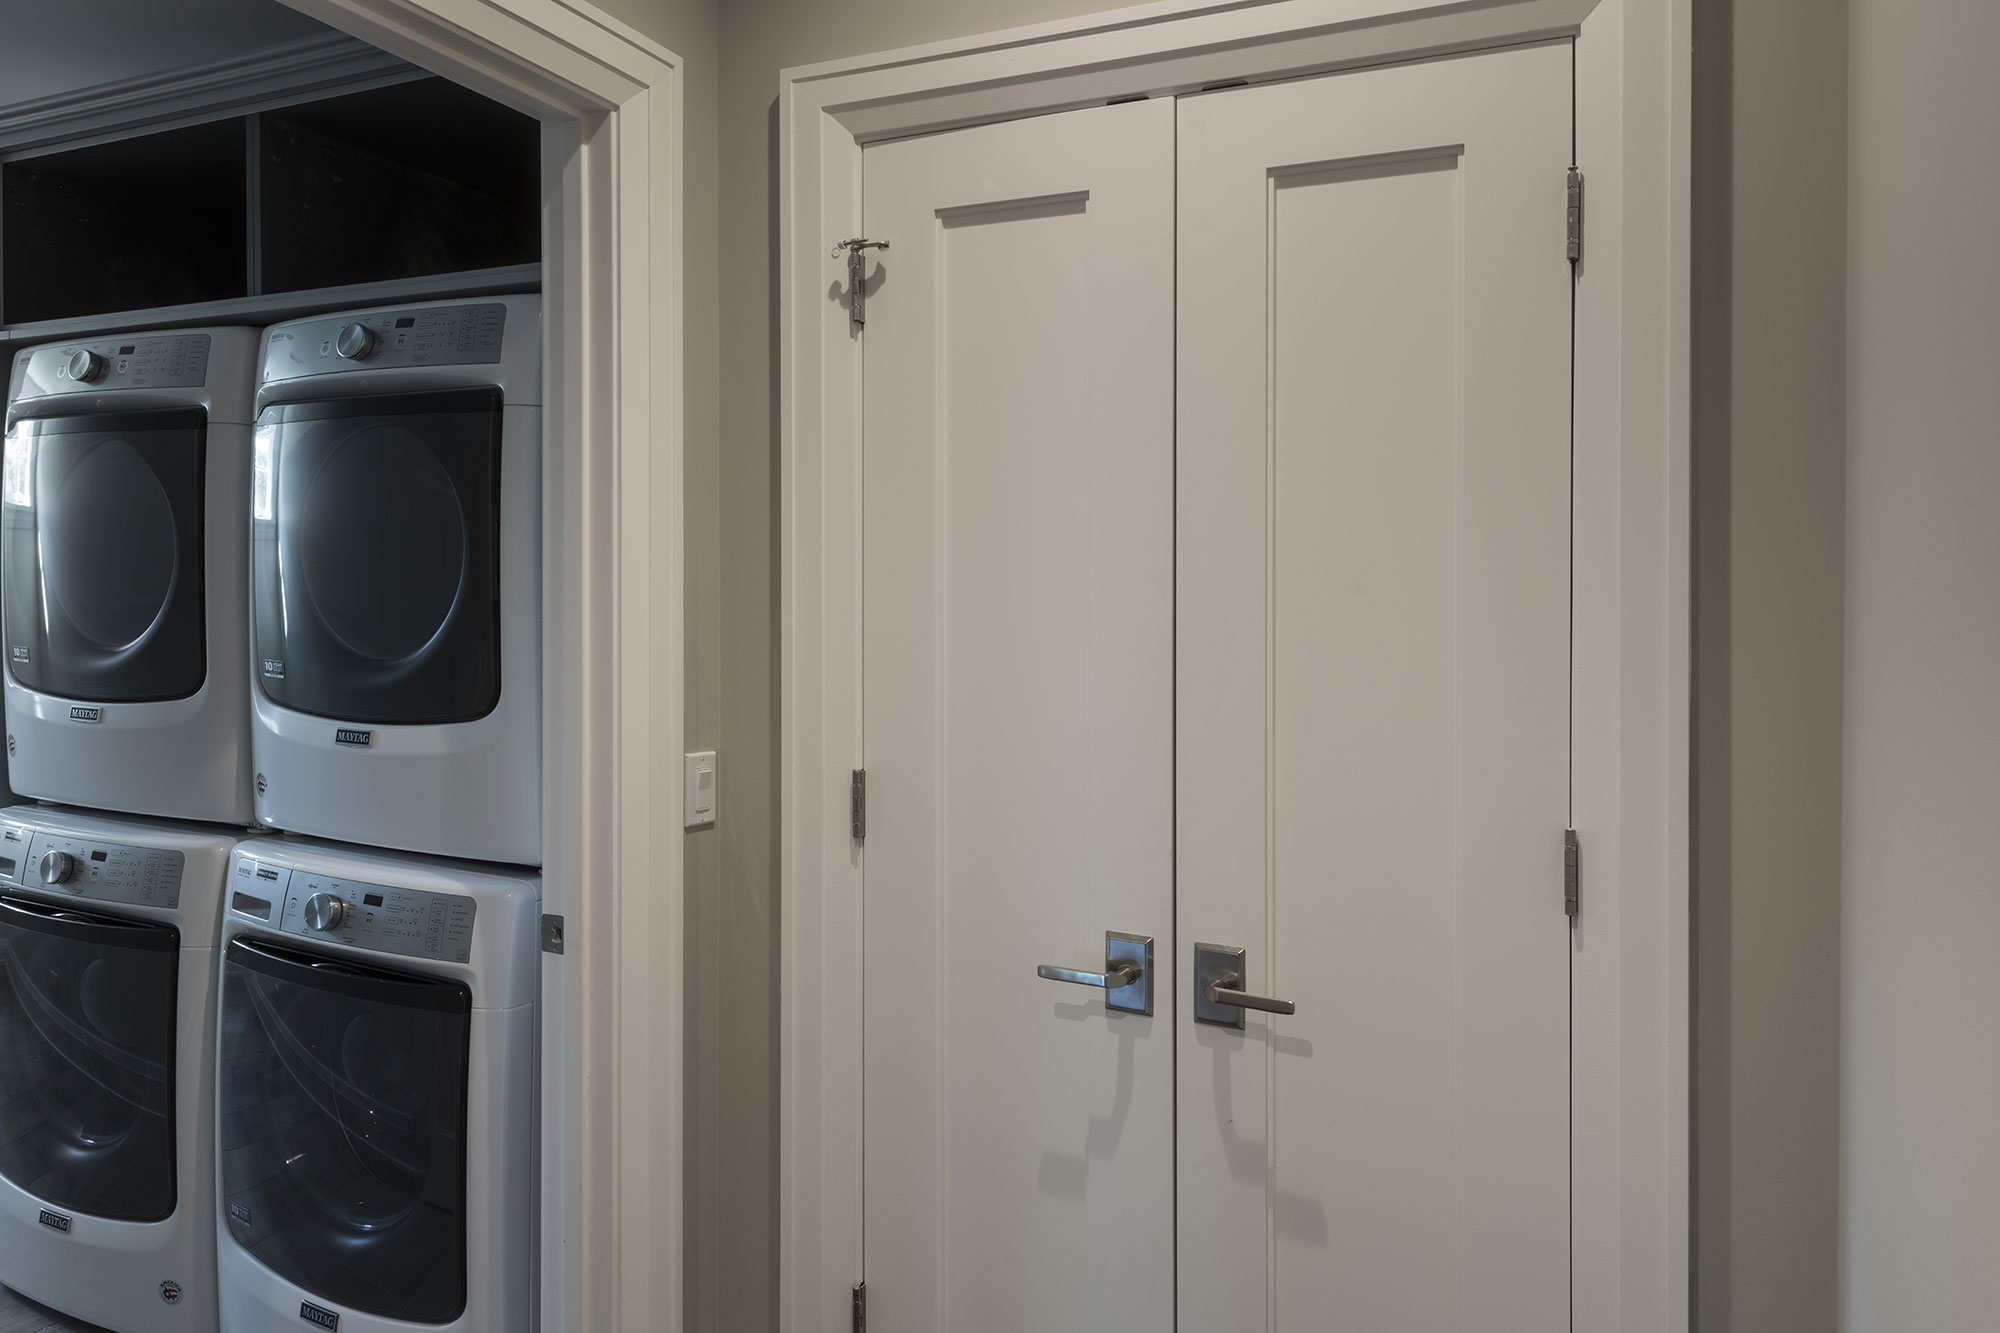 Closet Double Doors Laundry Entrance New Custom Homes Globex Developments Inc Custom Home Builders In Glenview New Construction House Building Professional Home Remodeling Projects Best Builder In Glenview